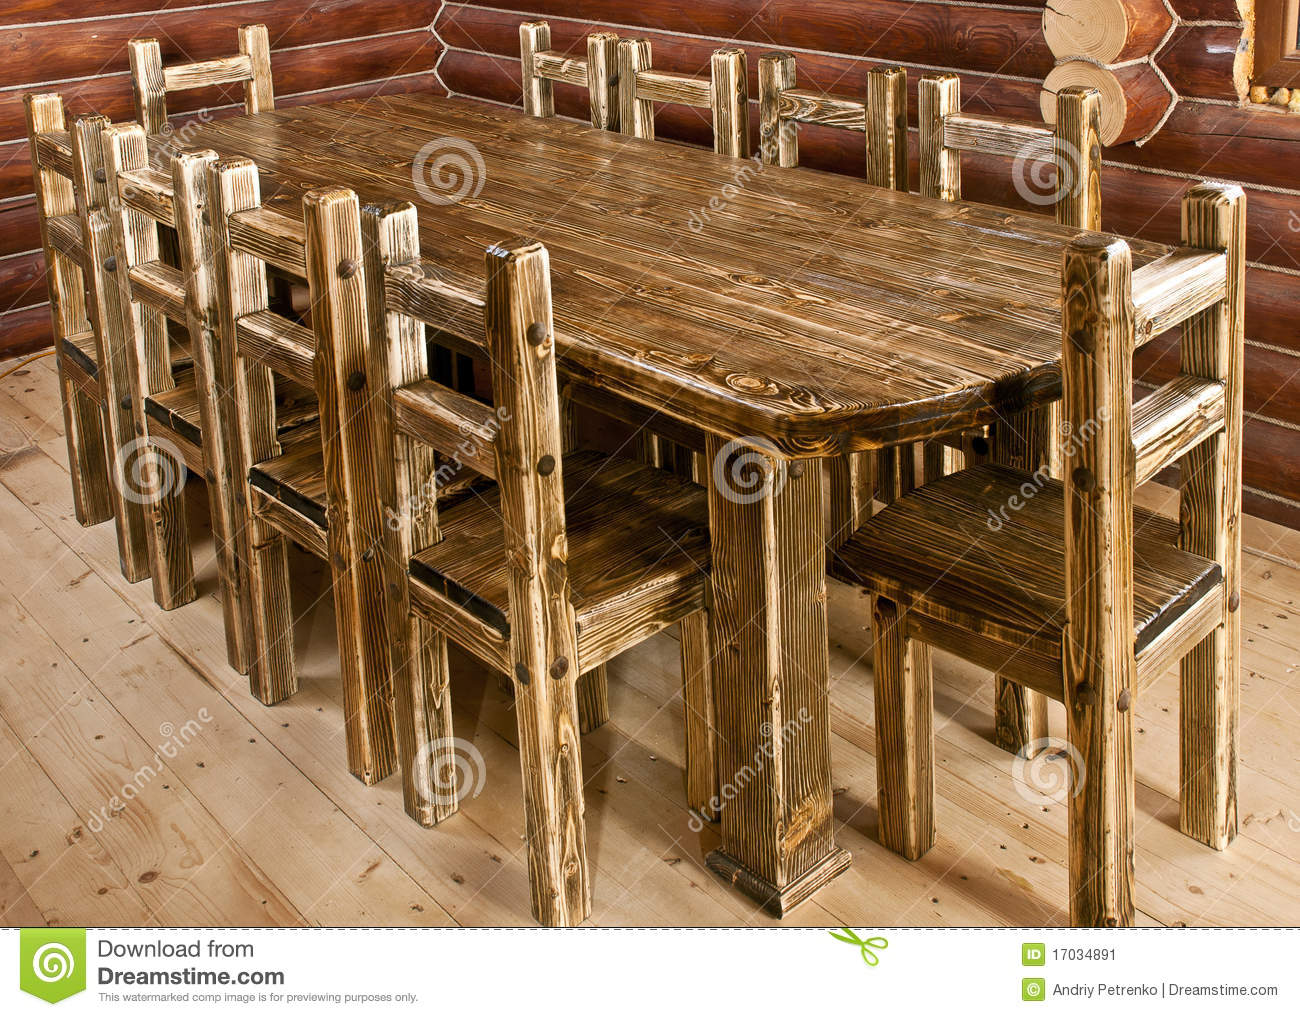 Handmade Large Kitchen Table Stock Image - Image of handmade ...